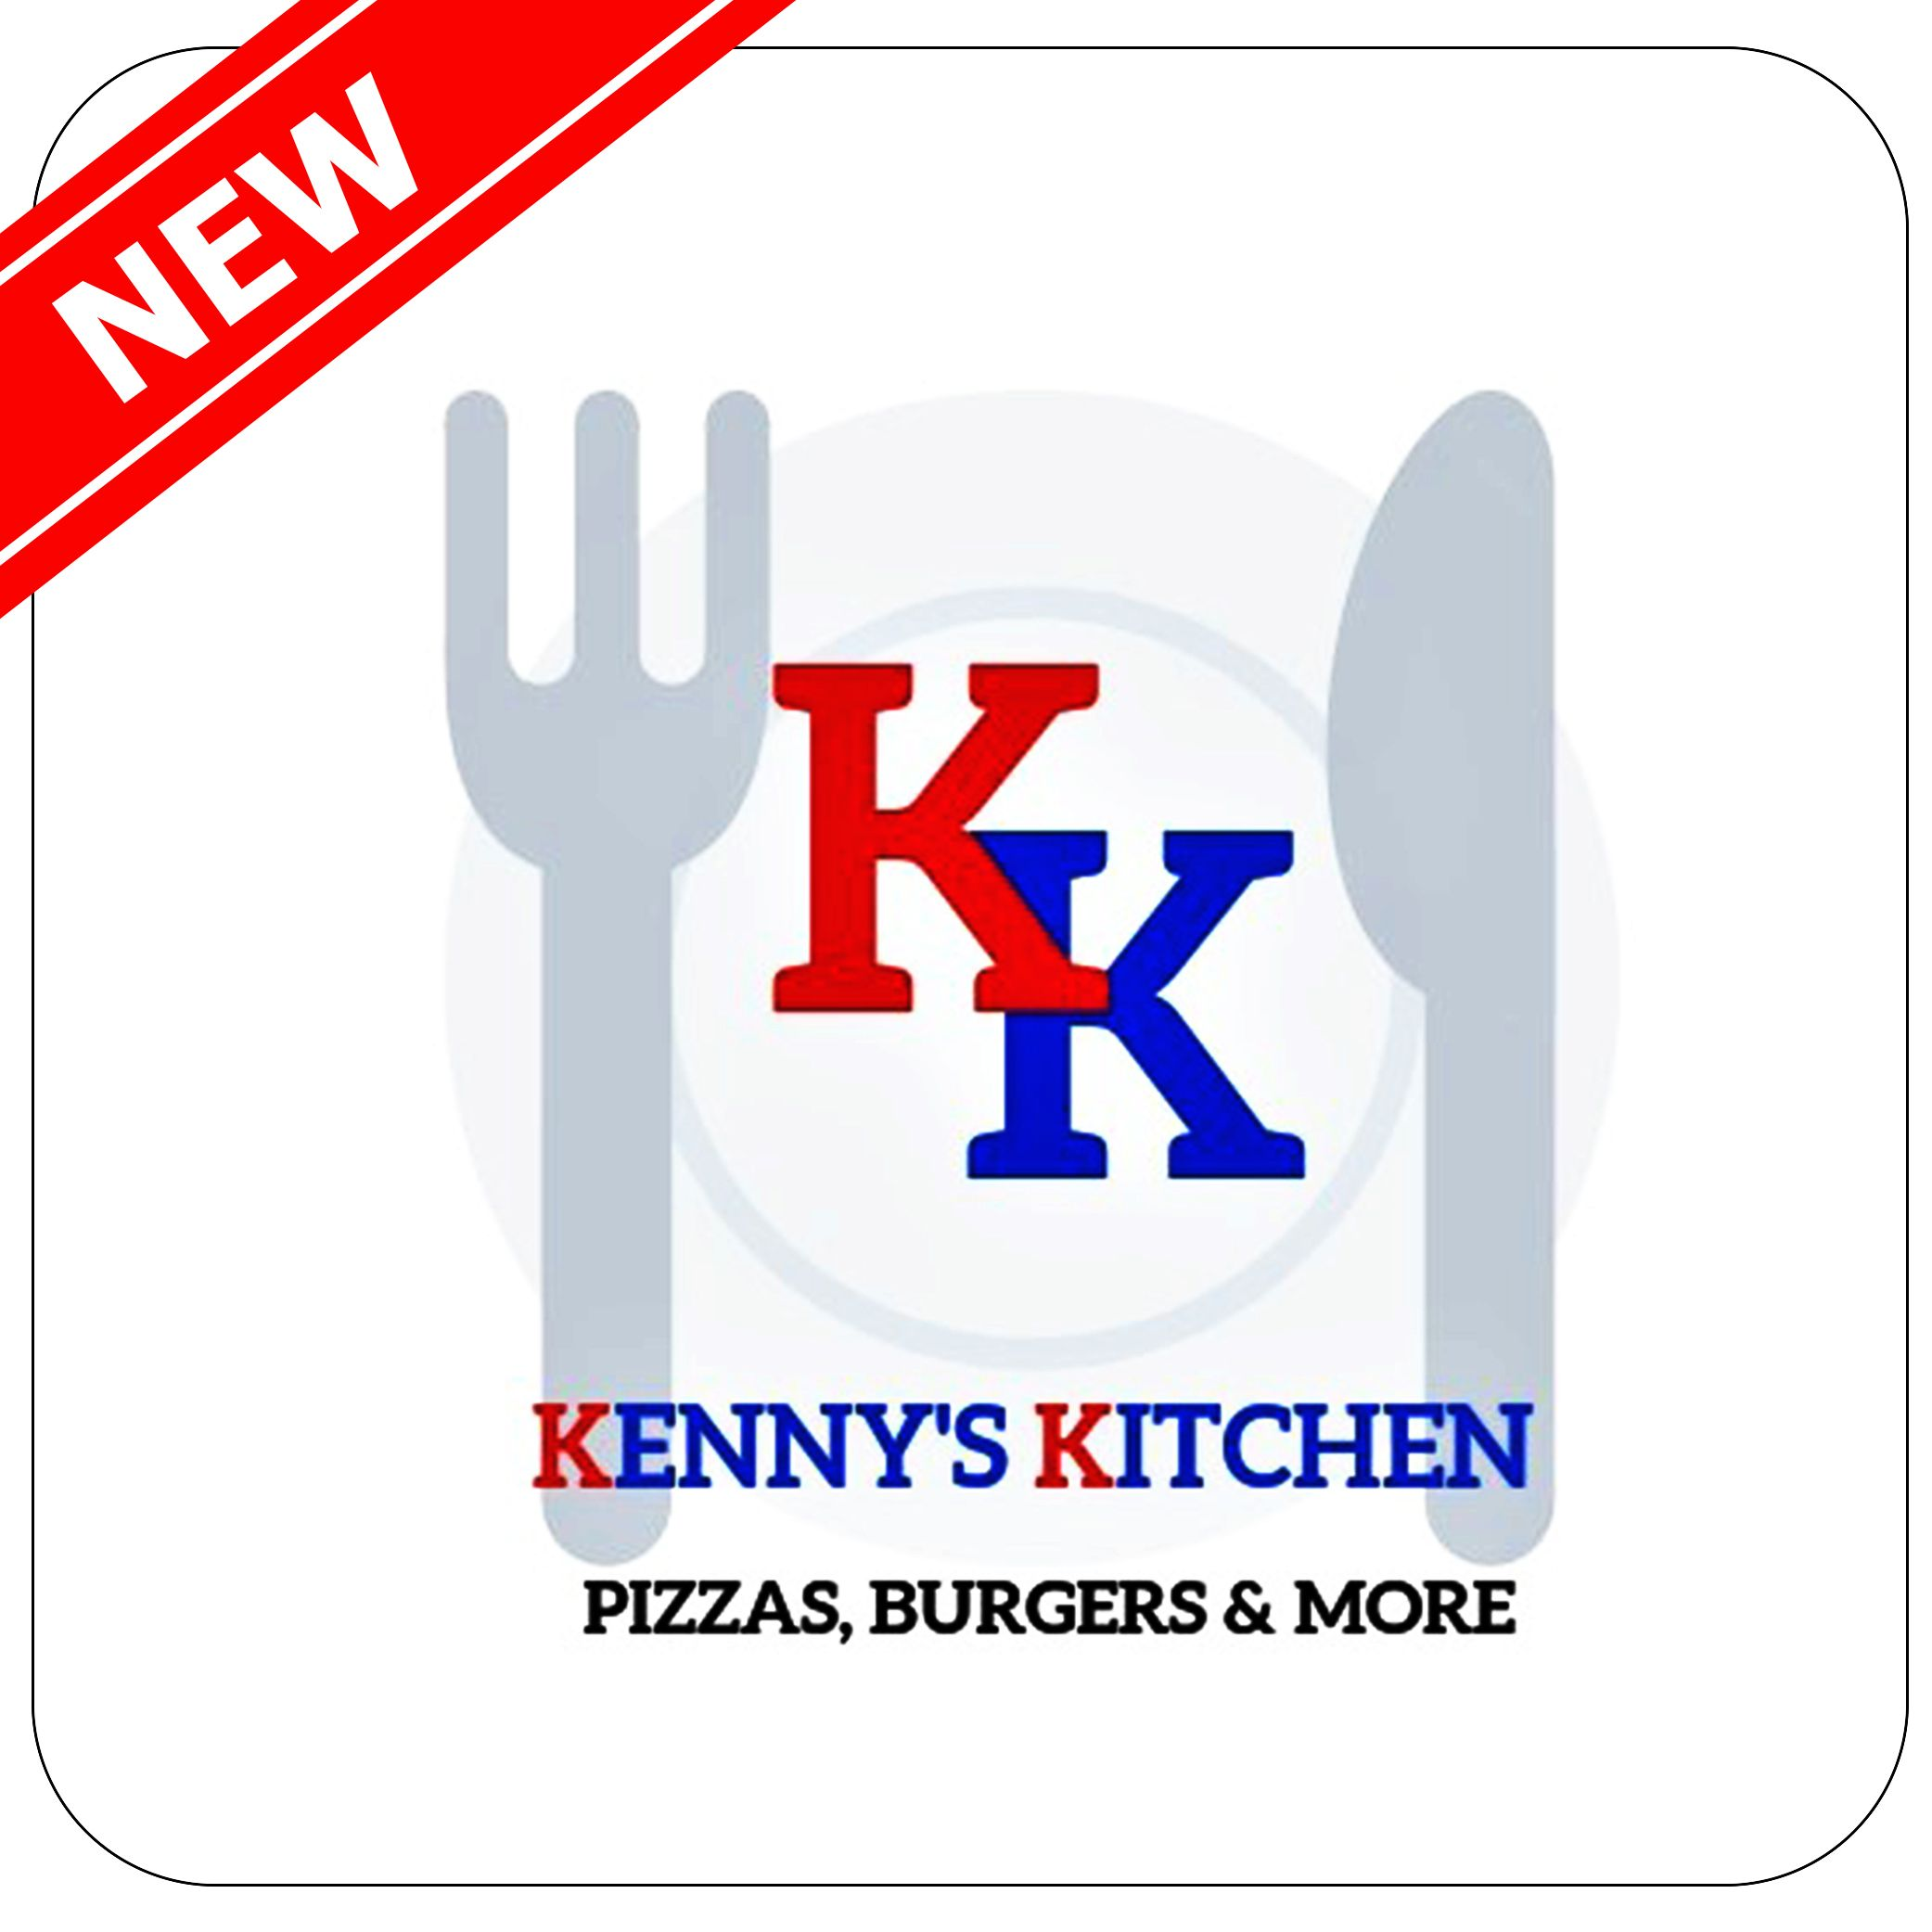 Piccolo Cafe and Kenny's Kitchen